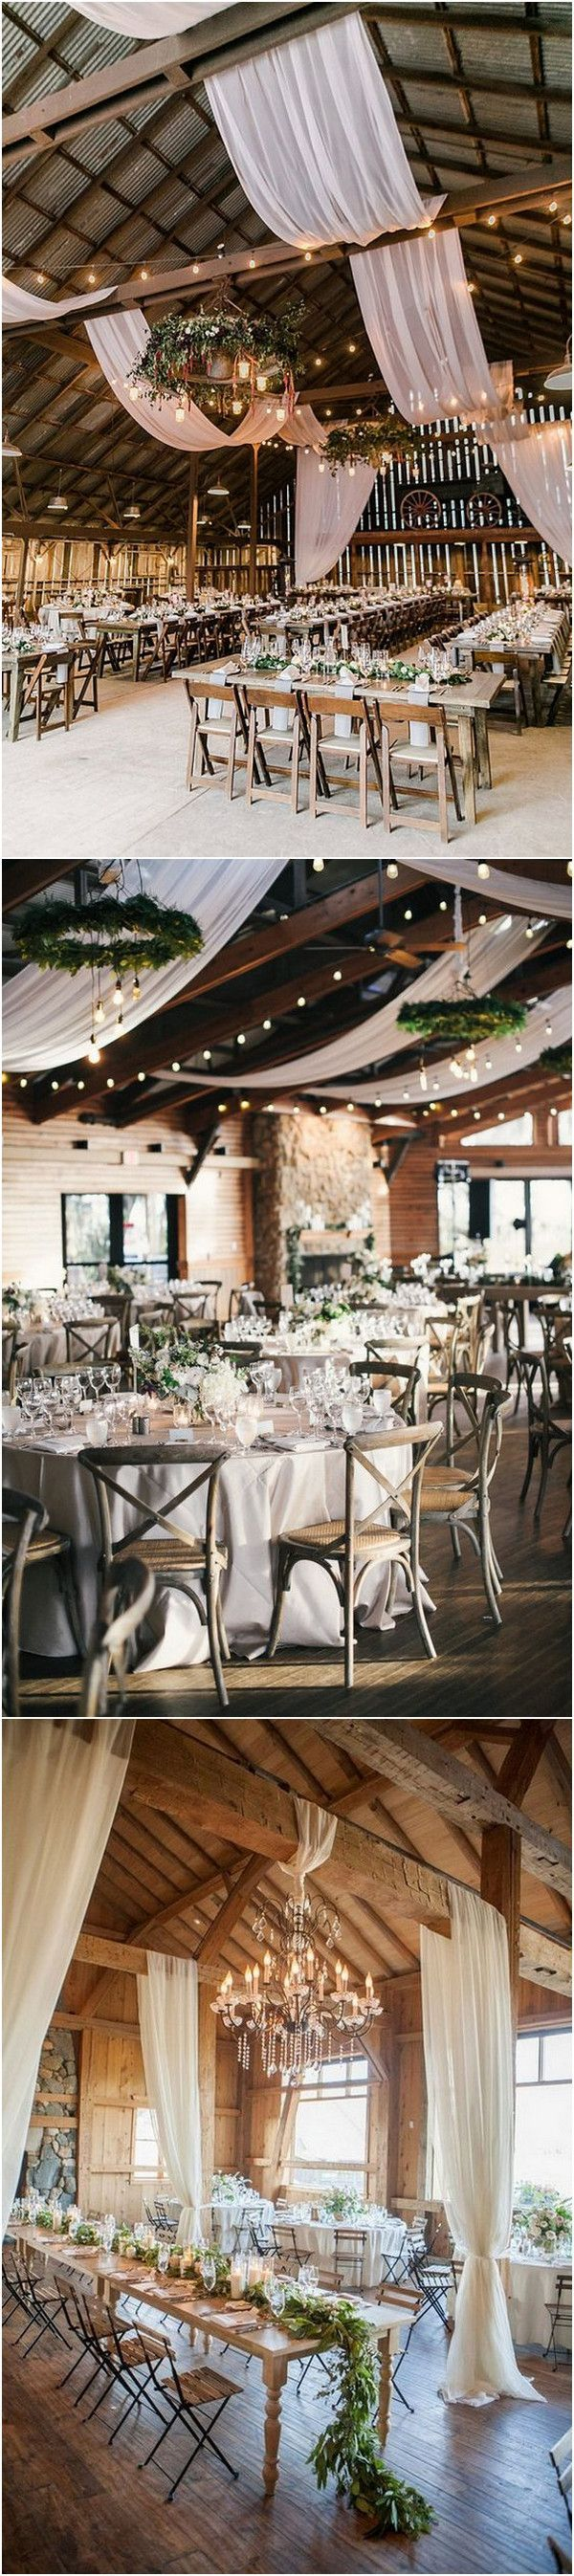 20 Chic Rustic Barn Wedding Reception Ideas to Love - Oh Best Day Ever #barnweddings